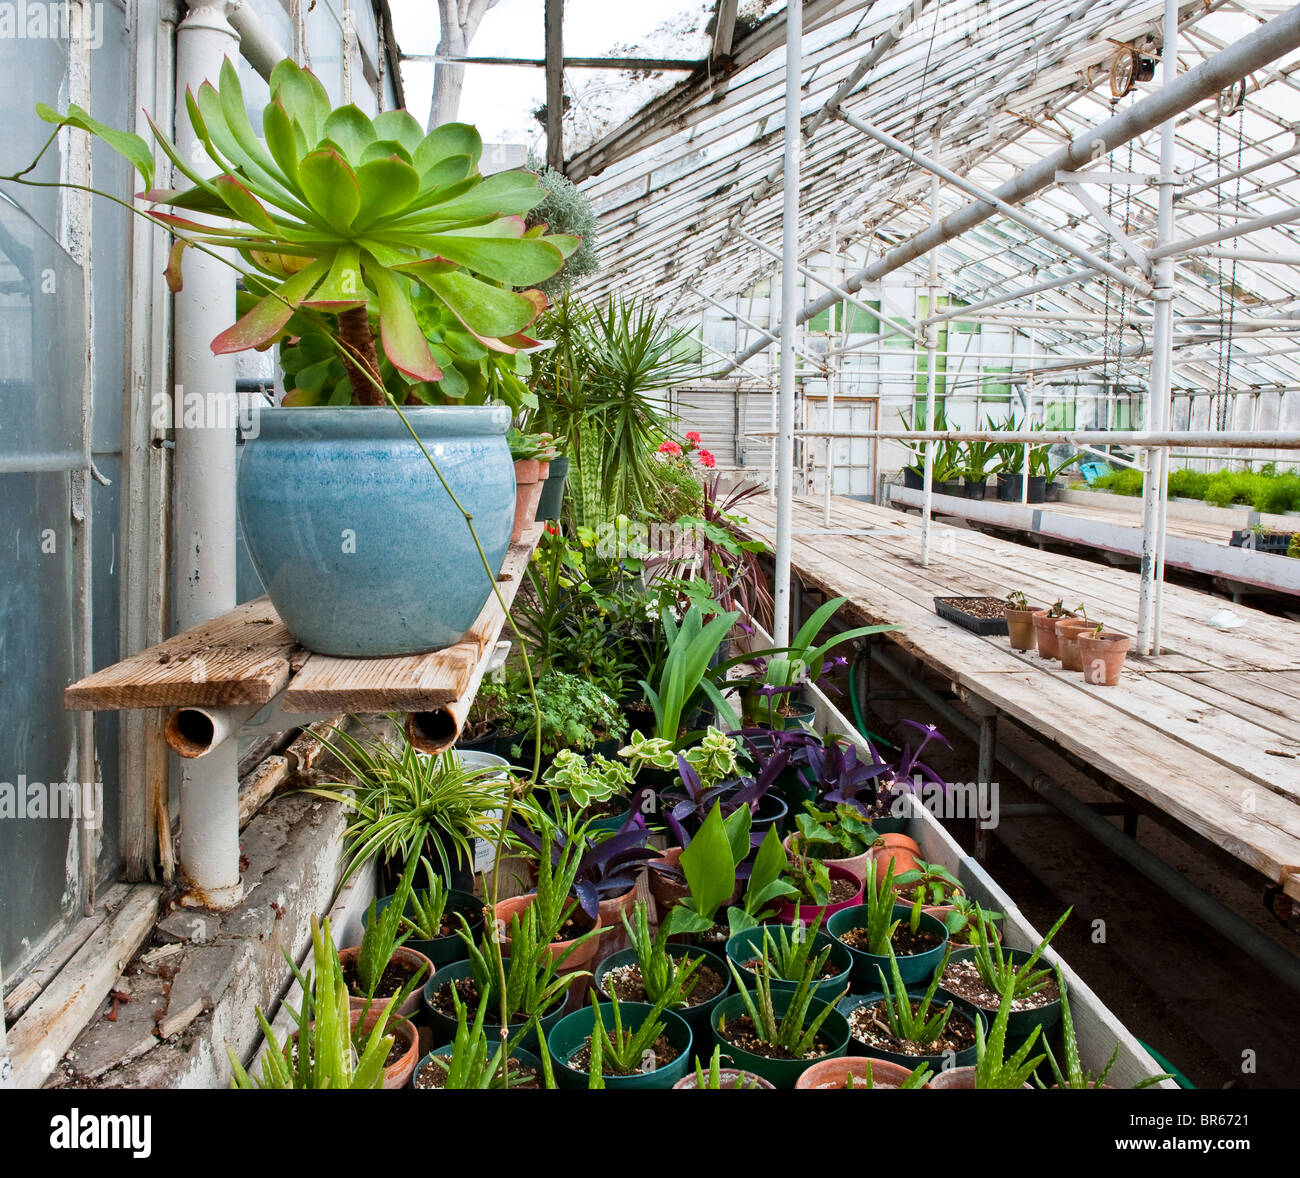 Interior view of a production greenhouse - Stock Image